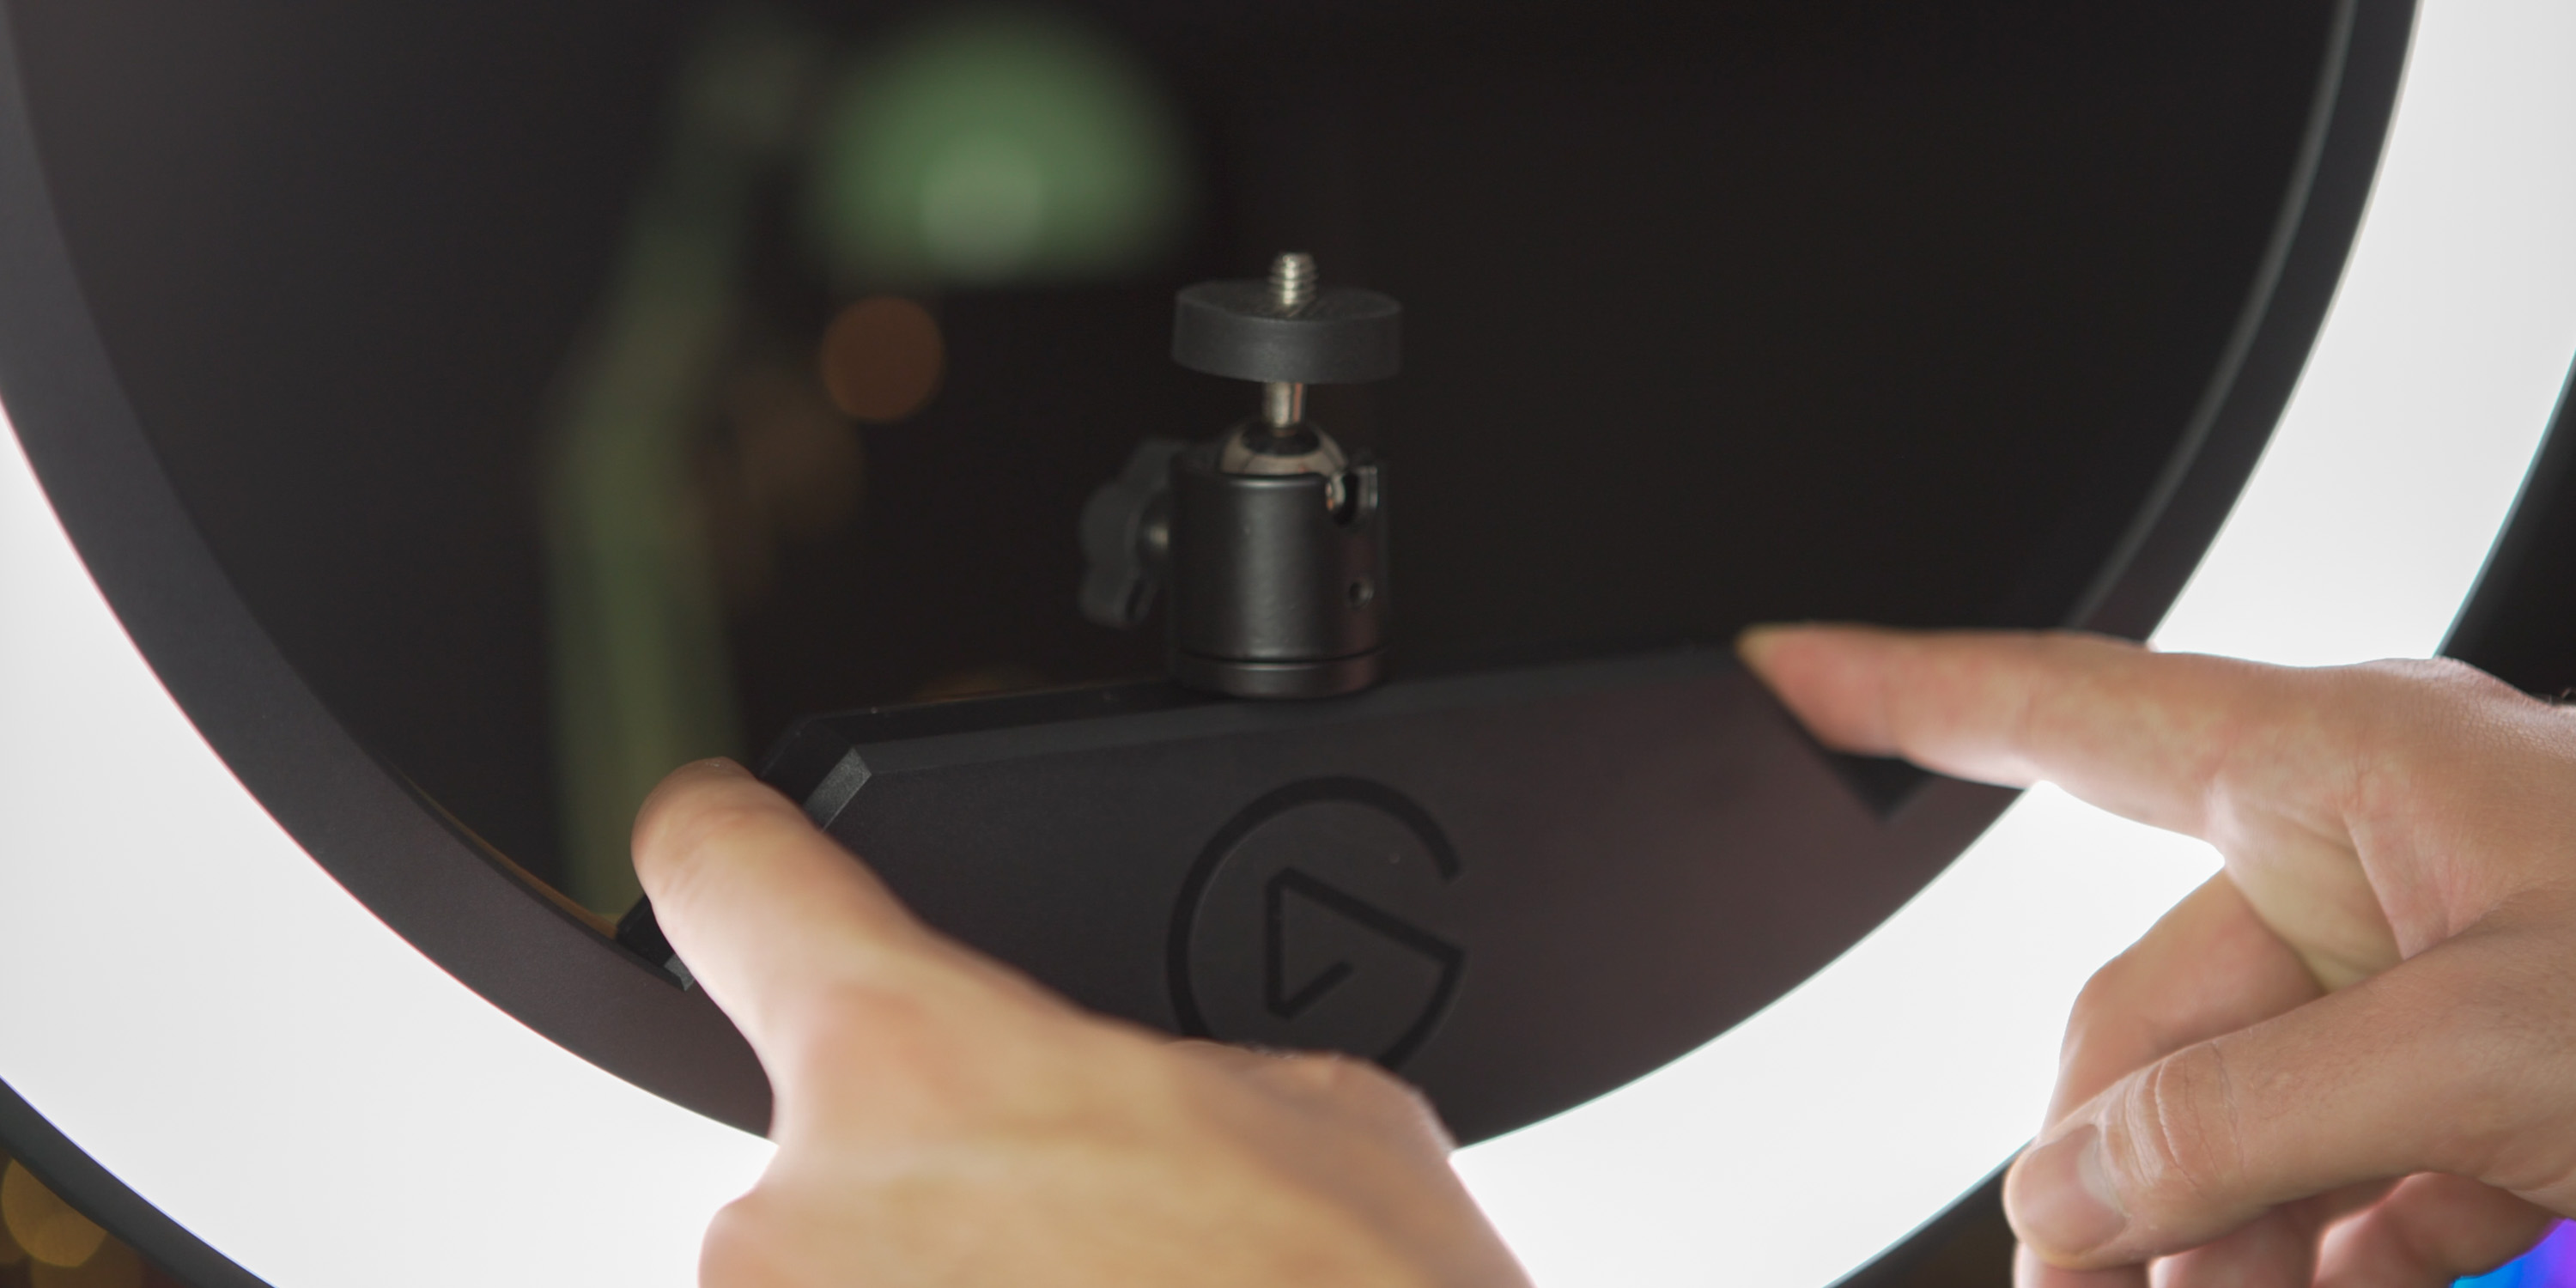 Using the controls on the Elgato Ring Light